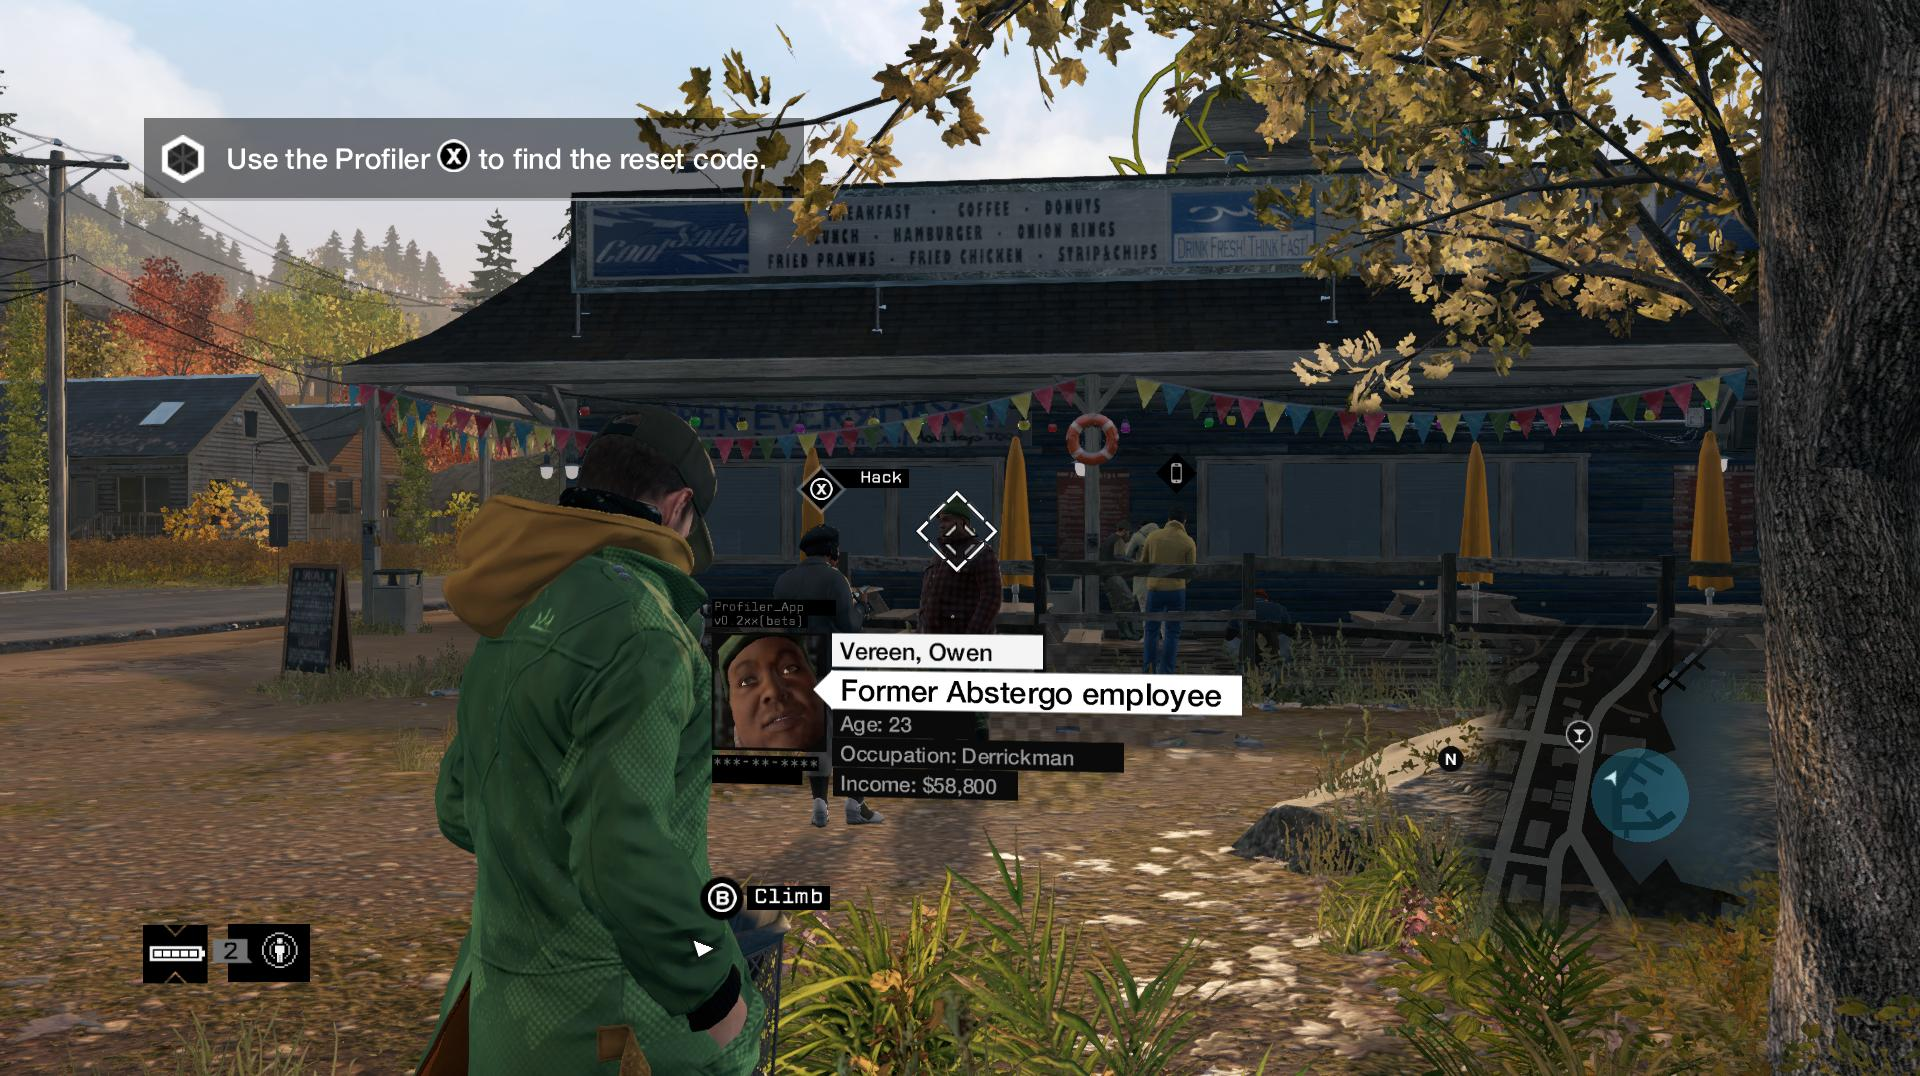 Random Time! Watch Dogs Easter Egg deutet auf Assassin's Creed Connection